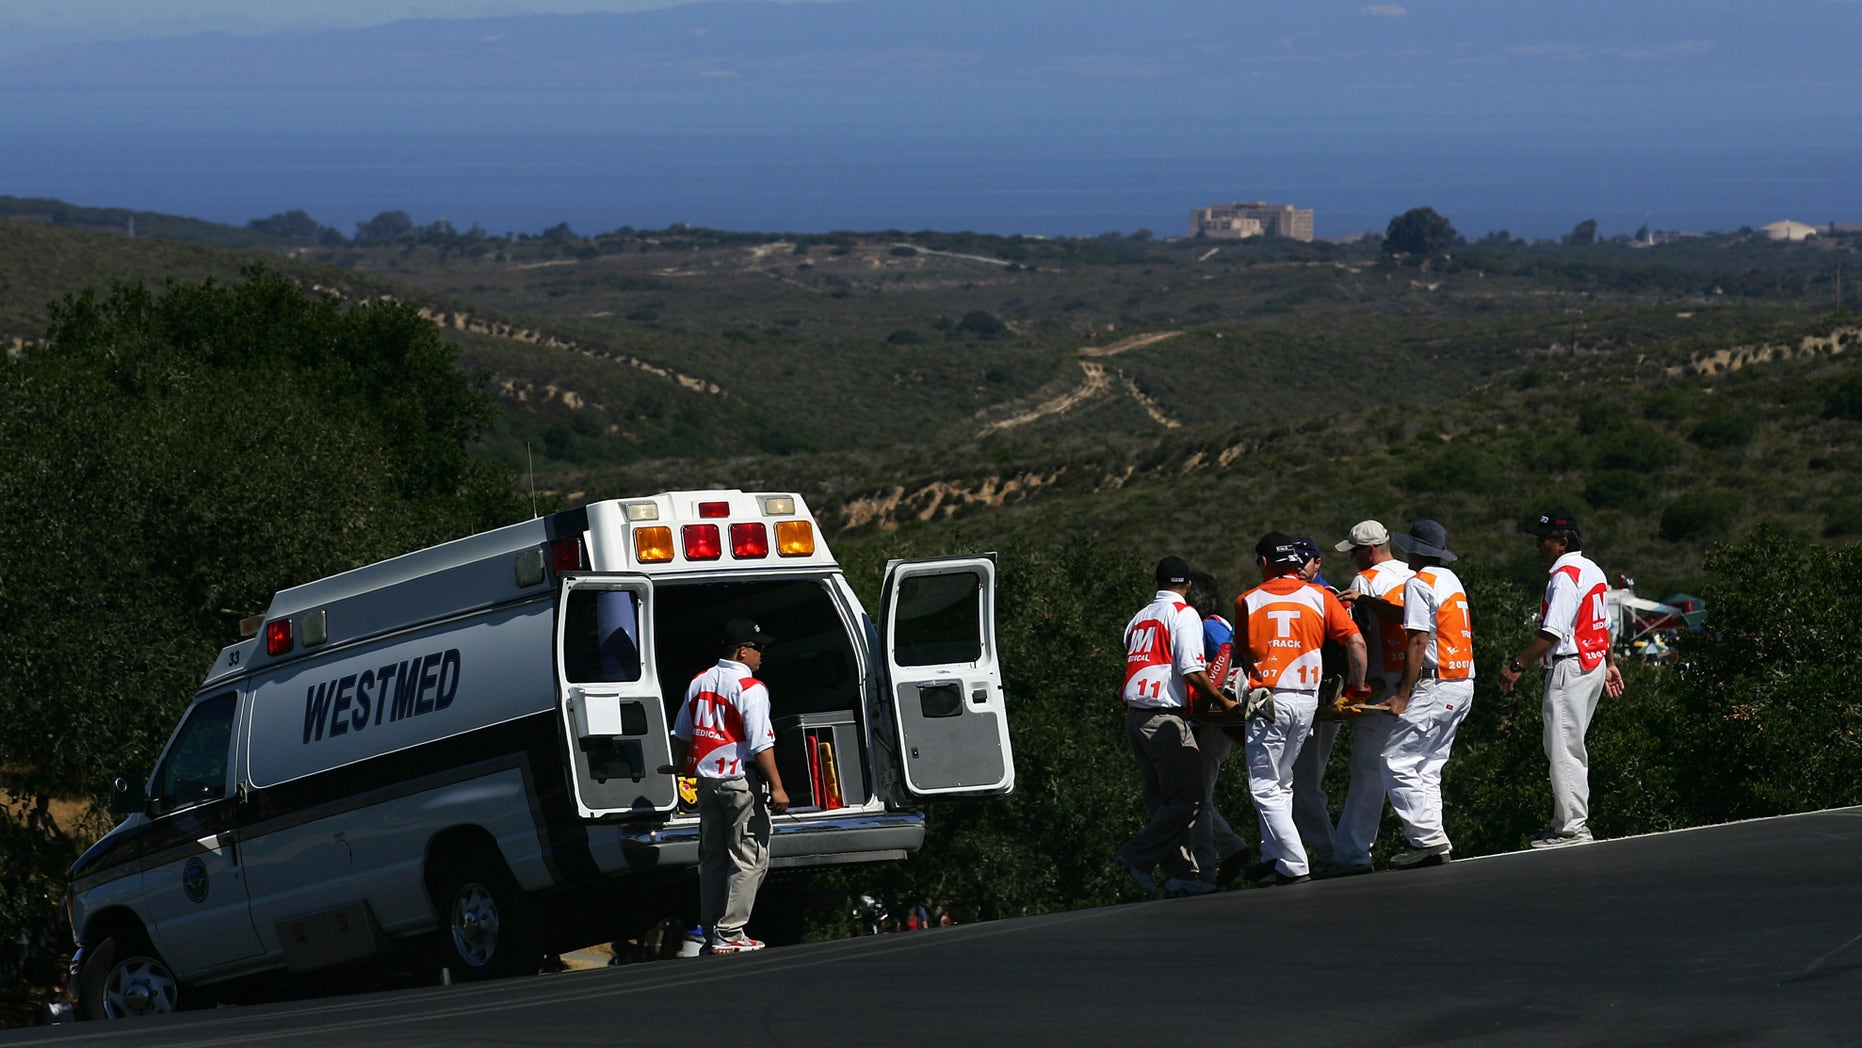 MONTEREY, CA - JULY 20:  Alex Hoffman of Germany riding the #66 Pramac D'Antin Ducati gets put into an ambulance after getting injured in a crash during practice for the 2007 Red Bull U.S. Grand Prix, part of the MotoGP World Championships, at the Mazda Raceway Laguna Seca on July 20, 2007 in Monterey, California.  (Photo by Robert Laberge/Getty Images)